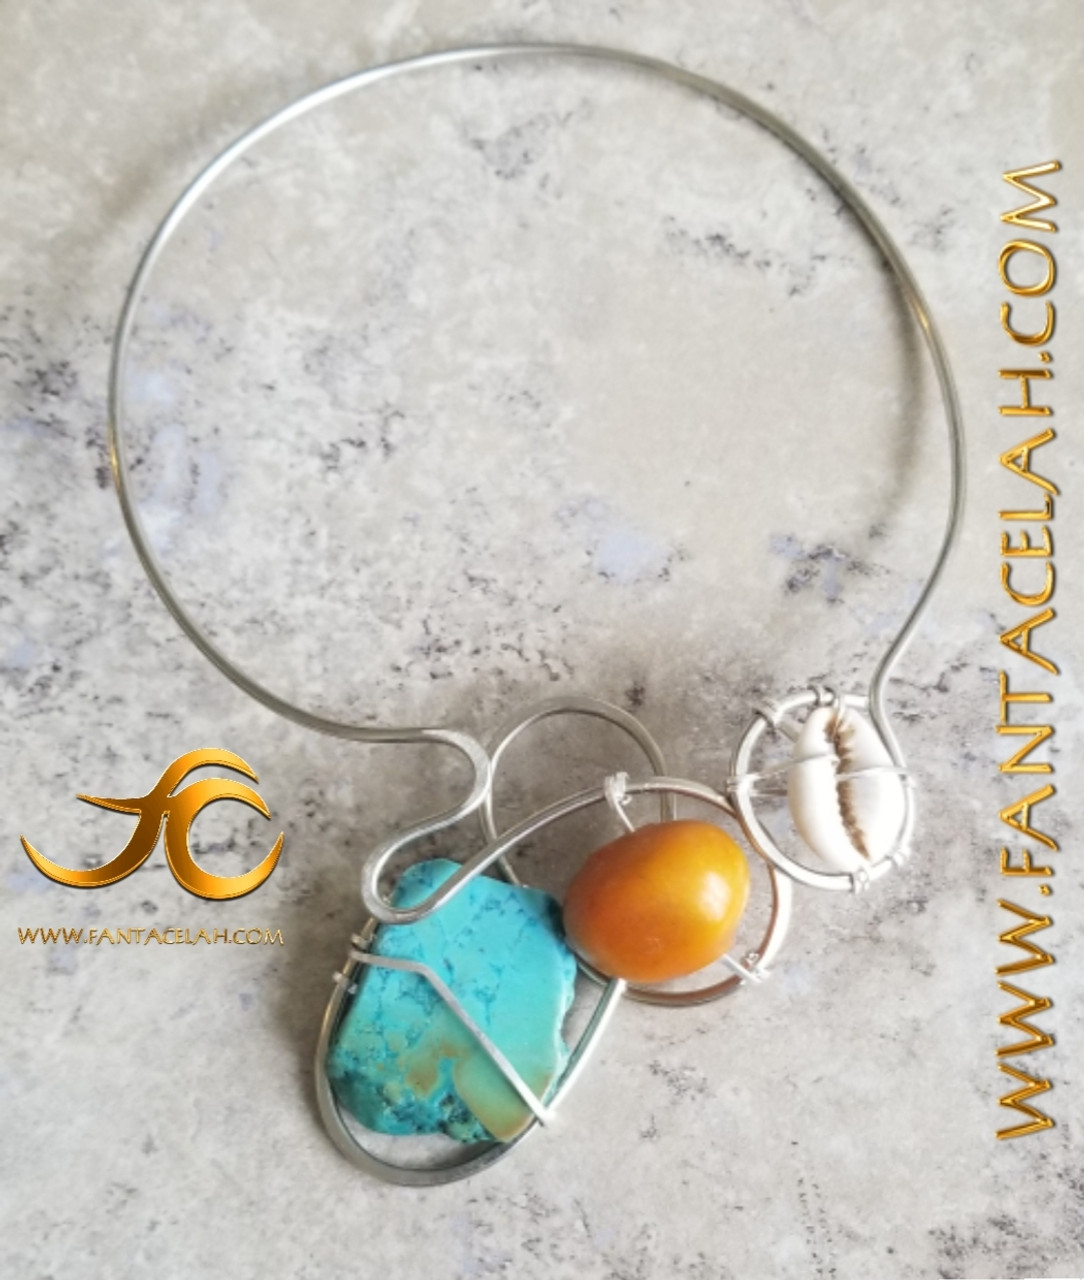 Afro-dreams Amber & Turquoise Galaxy Necklace